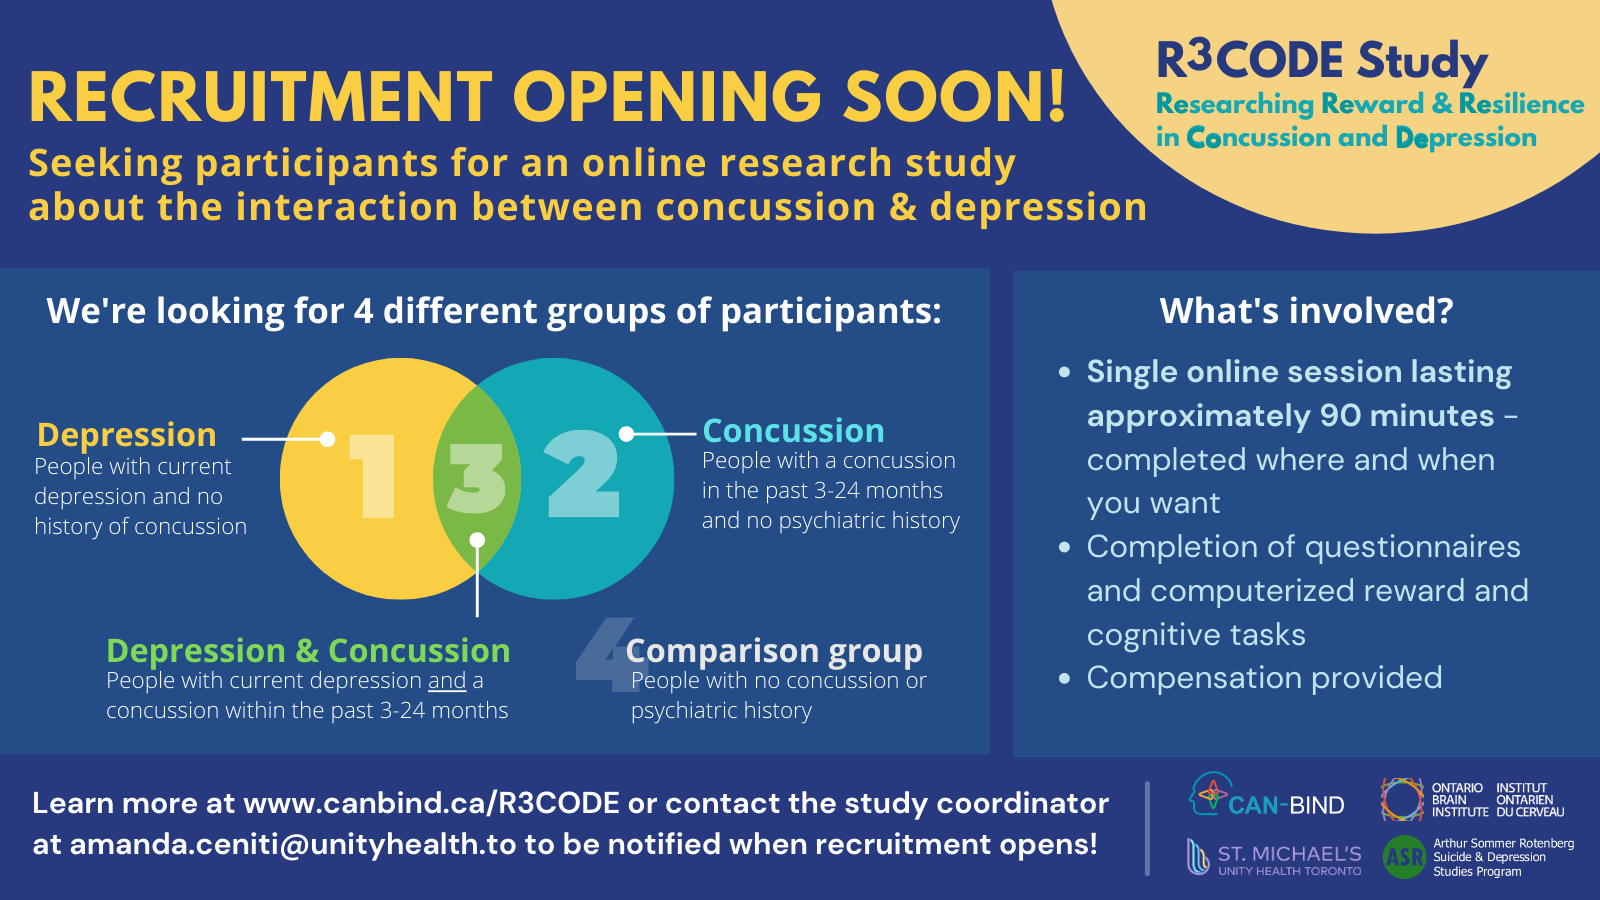 Coming Soon image for the R3CODE Study: Researching Reward and Resilience in Concussion and Depression